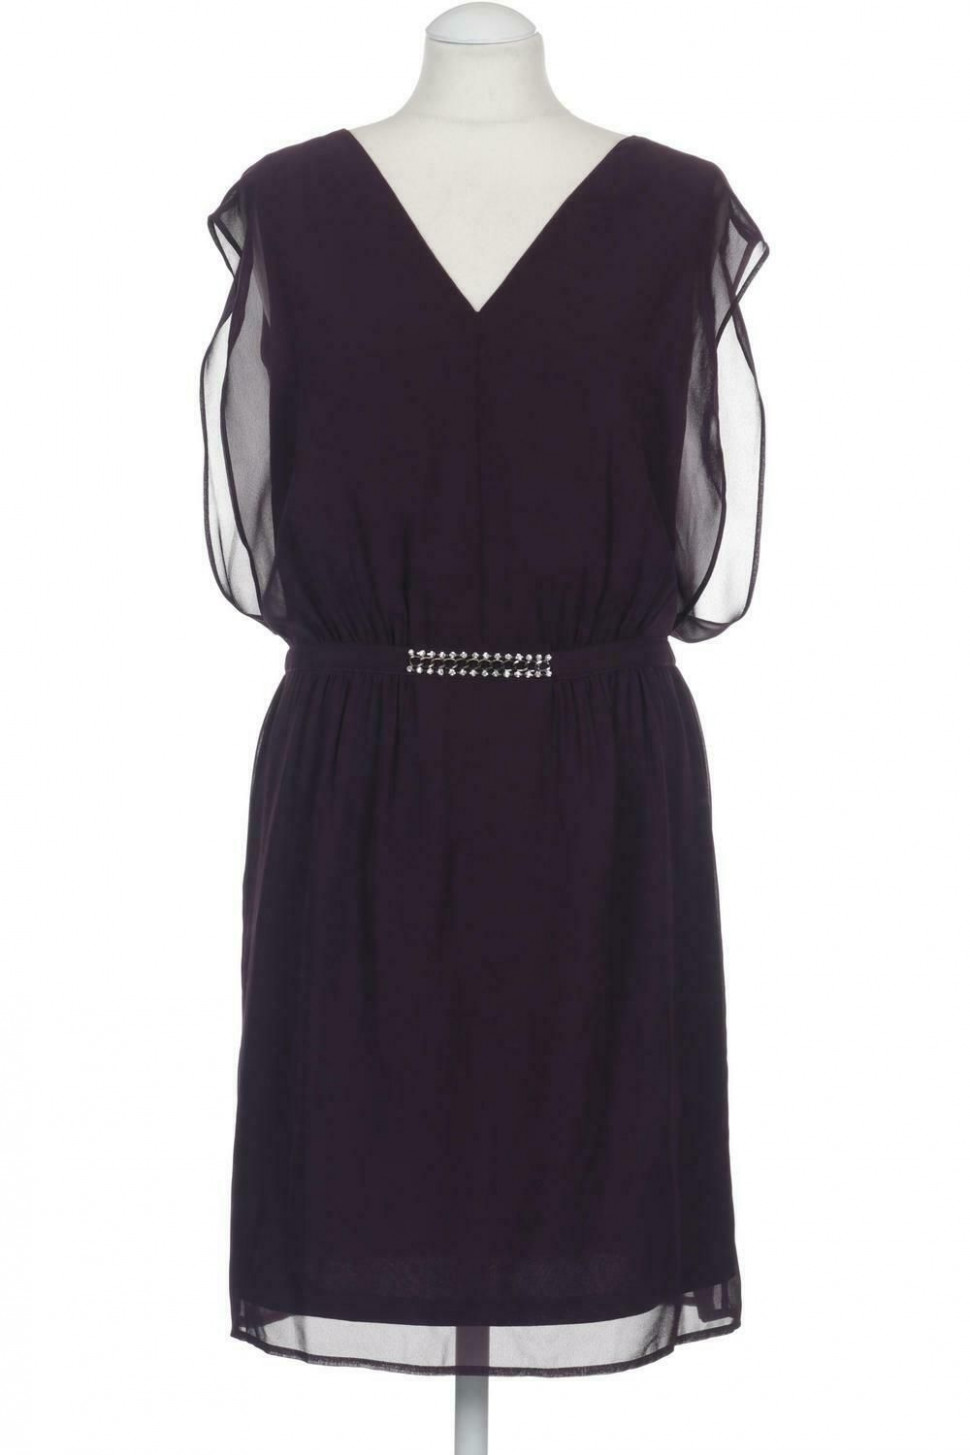 Esprit Kleid Damen Dress Damenkleid Gr